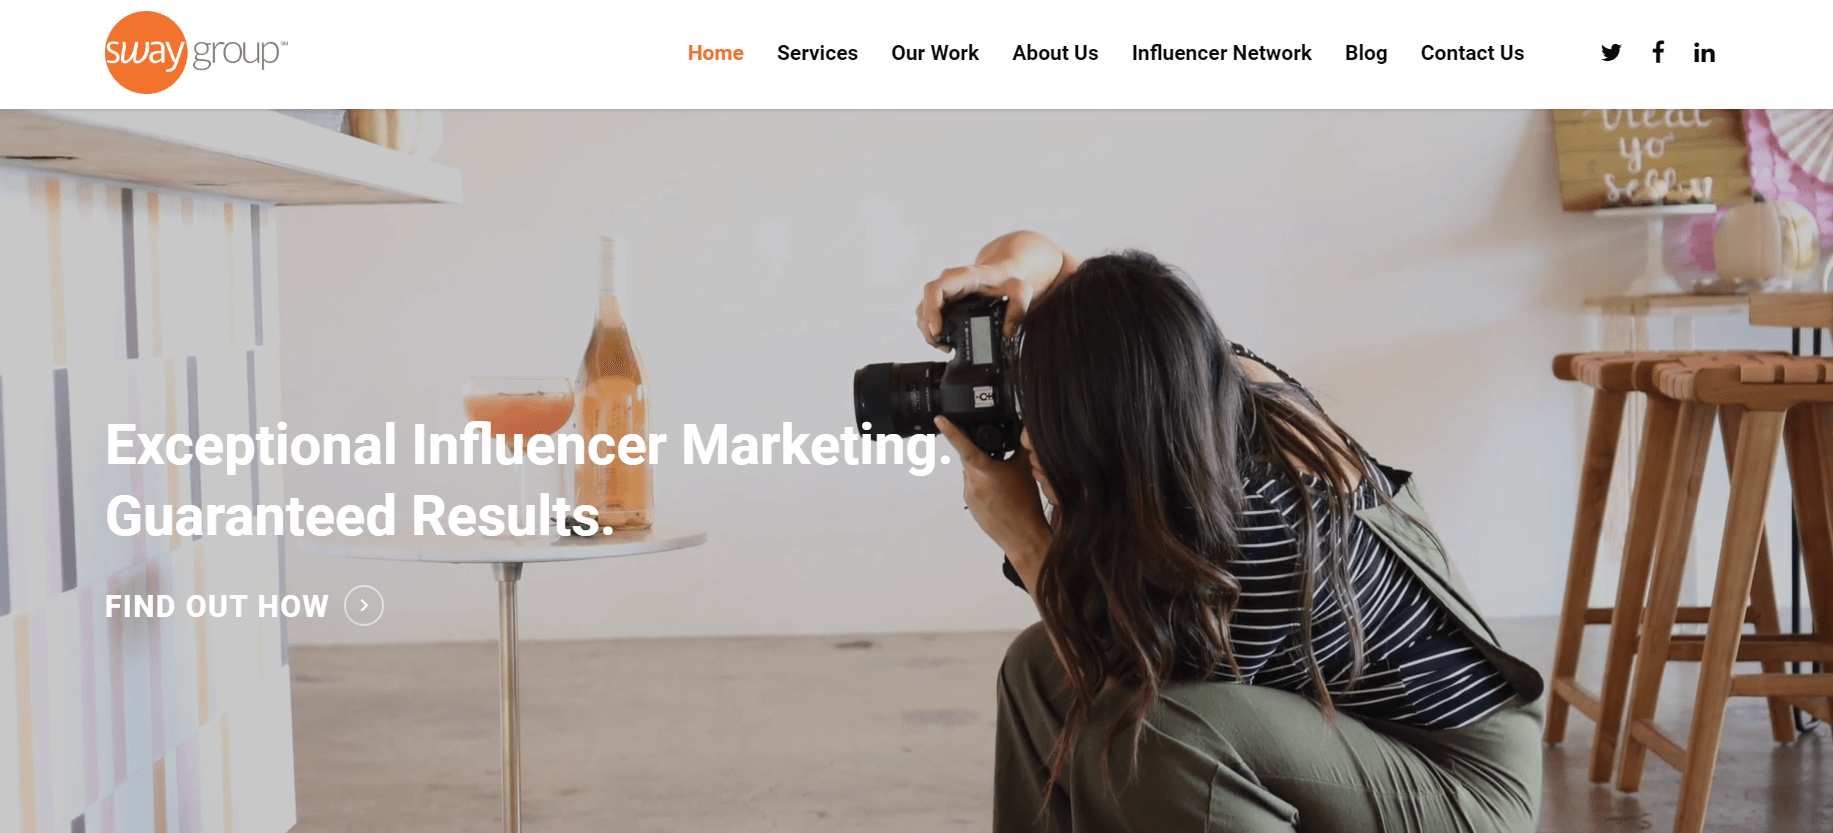 Sway Group Influencer Marketing Agency